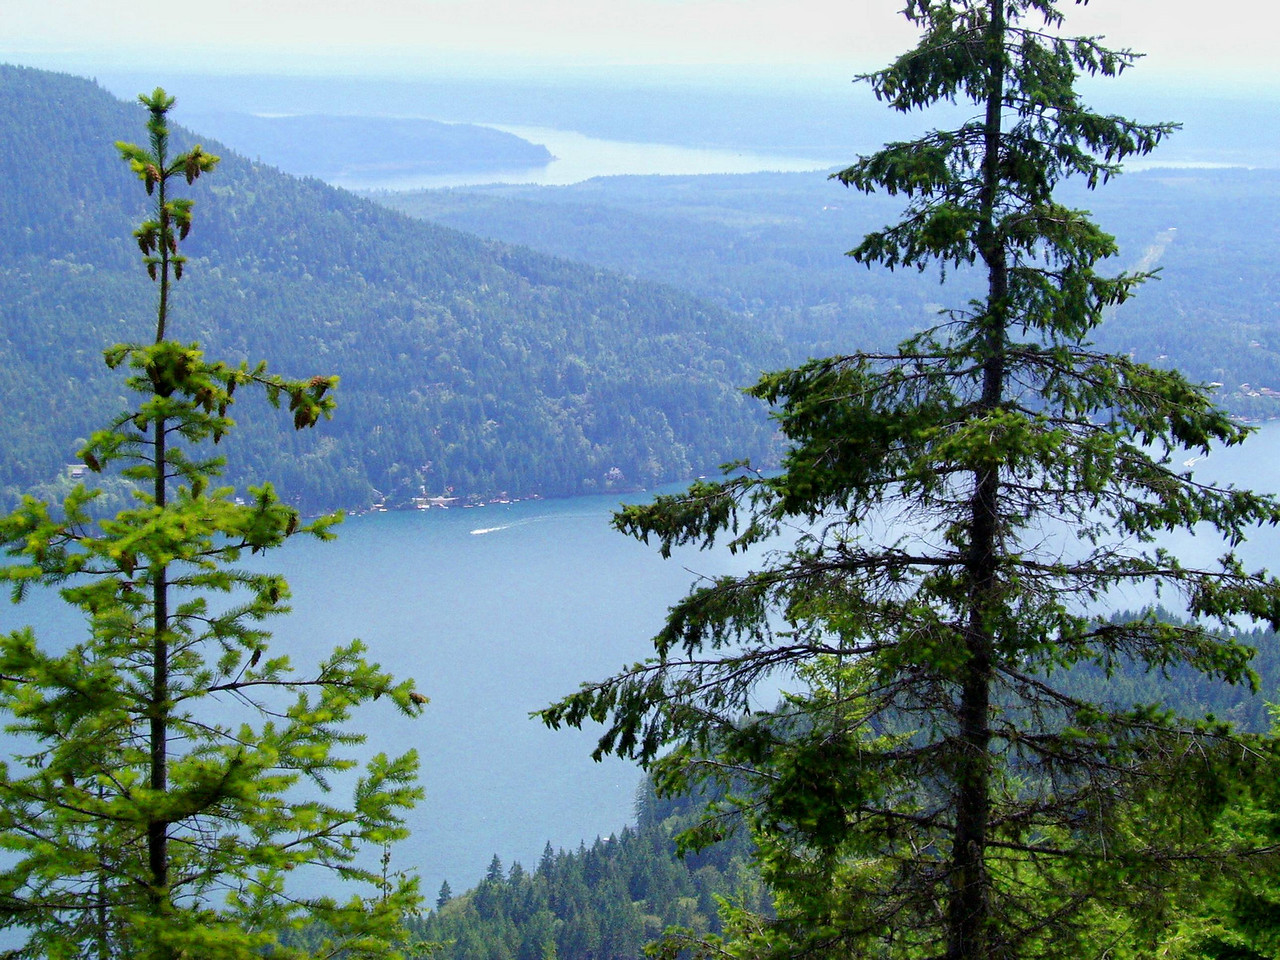 Lake Cushman in the foreground and Hood Canal behind.